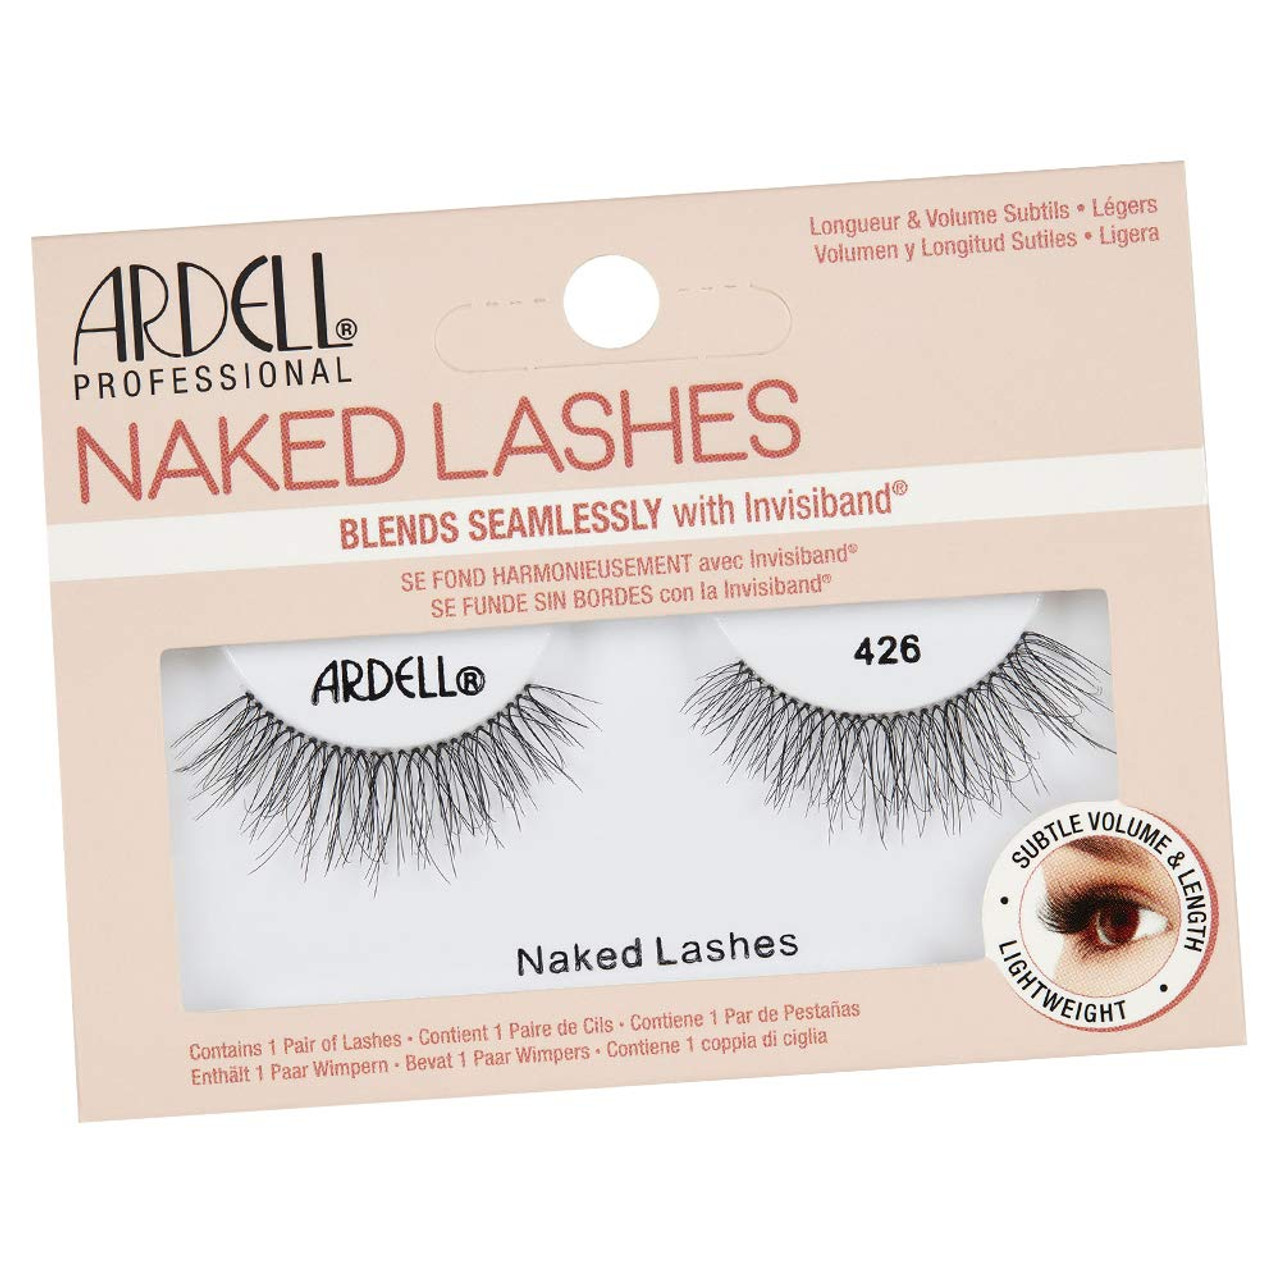 Ardell Naked Lashes 426